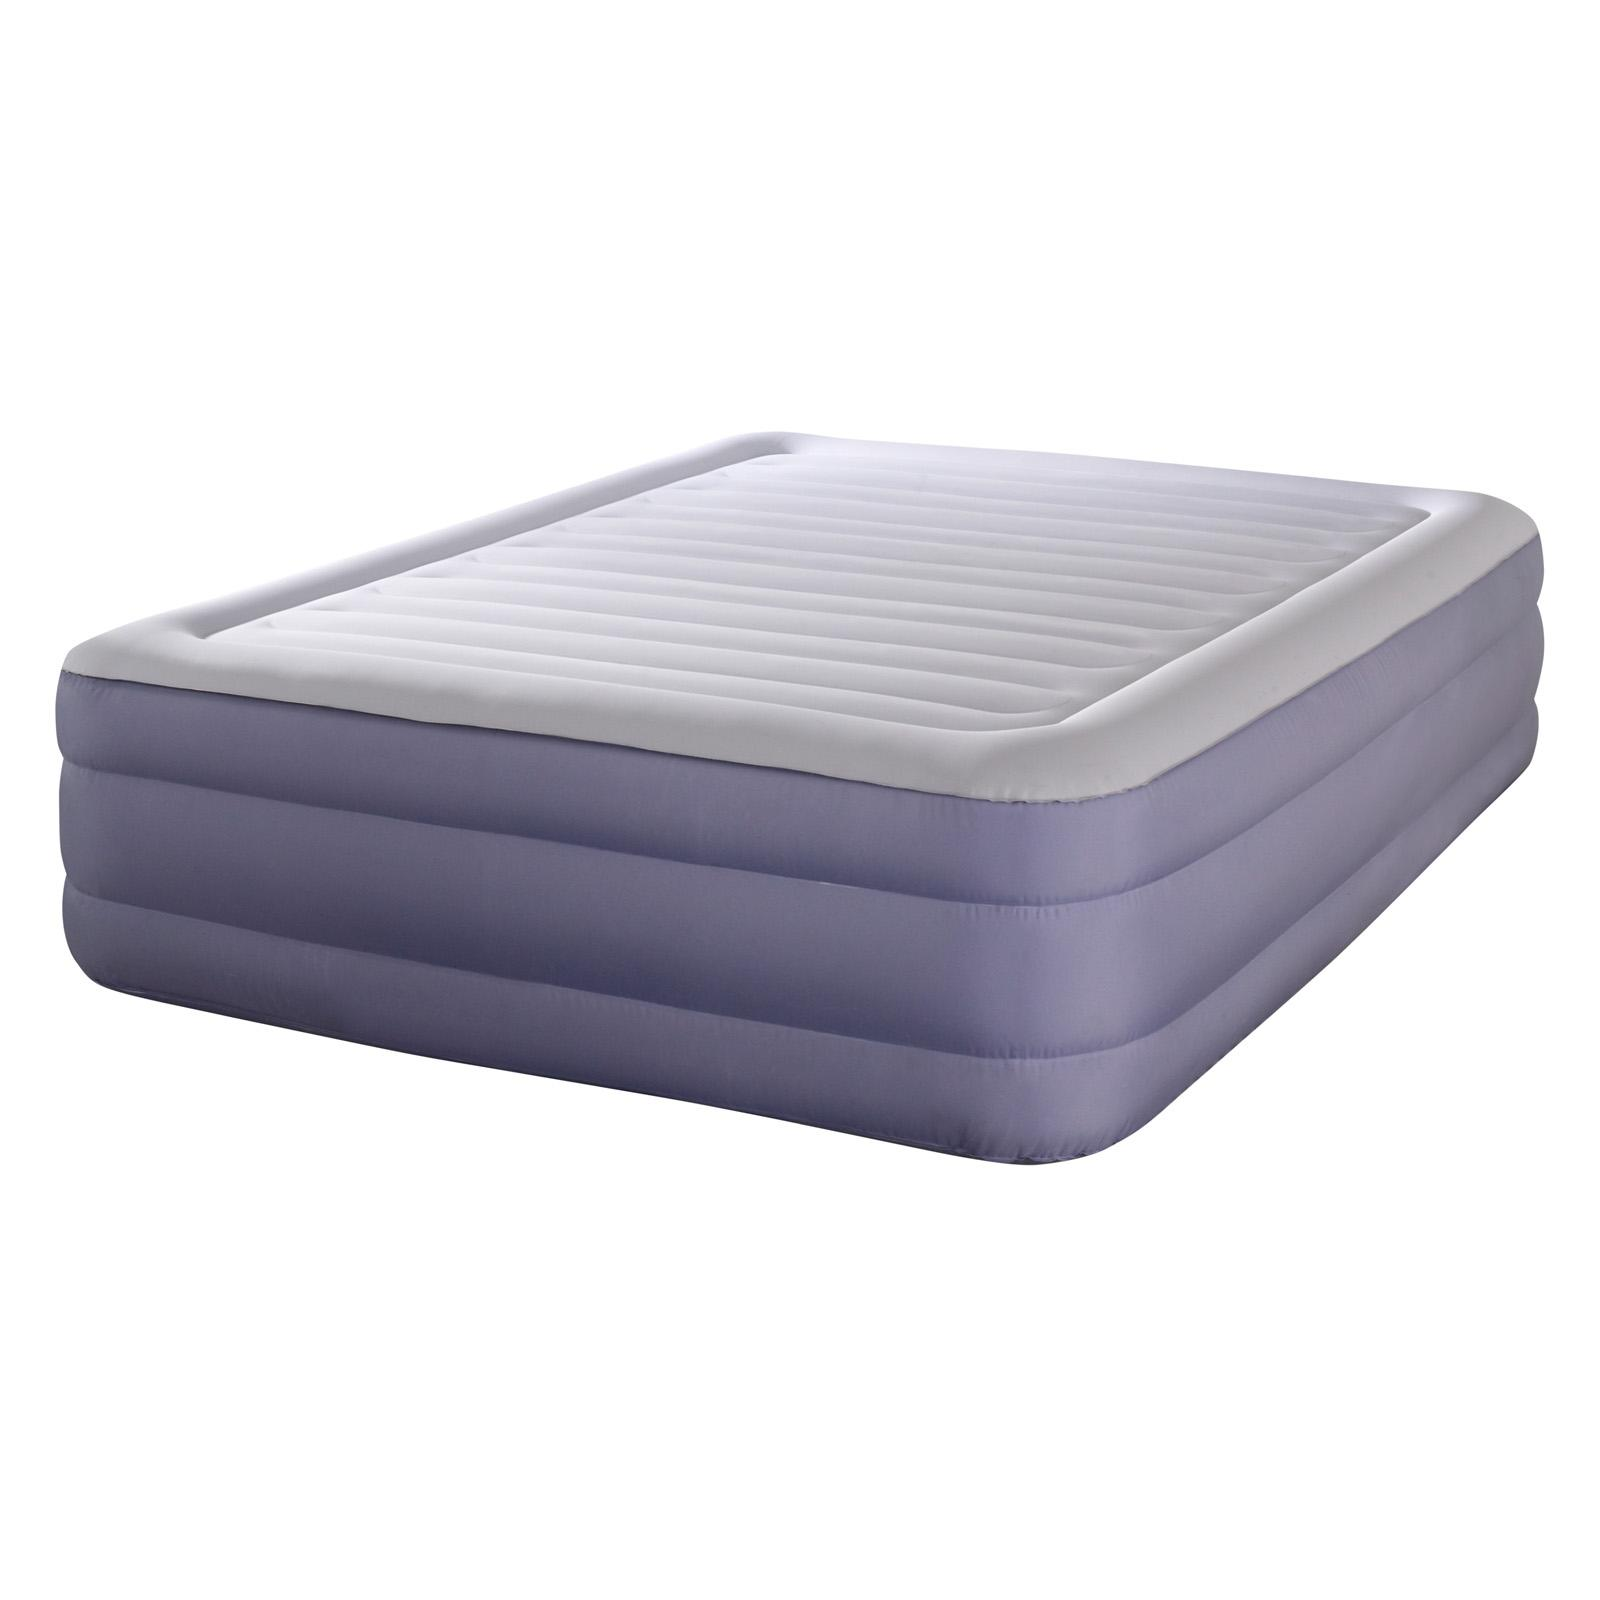 Simmons Beautyrest Fusion Aire 18 inch Queen Size Air Bed...